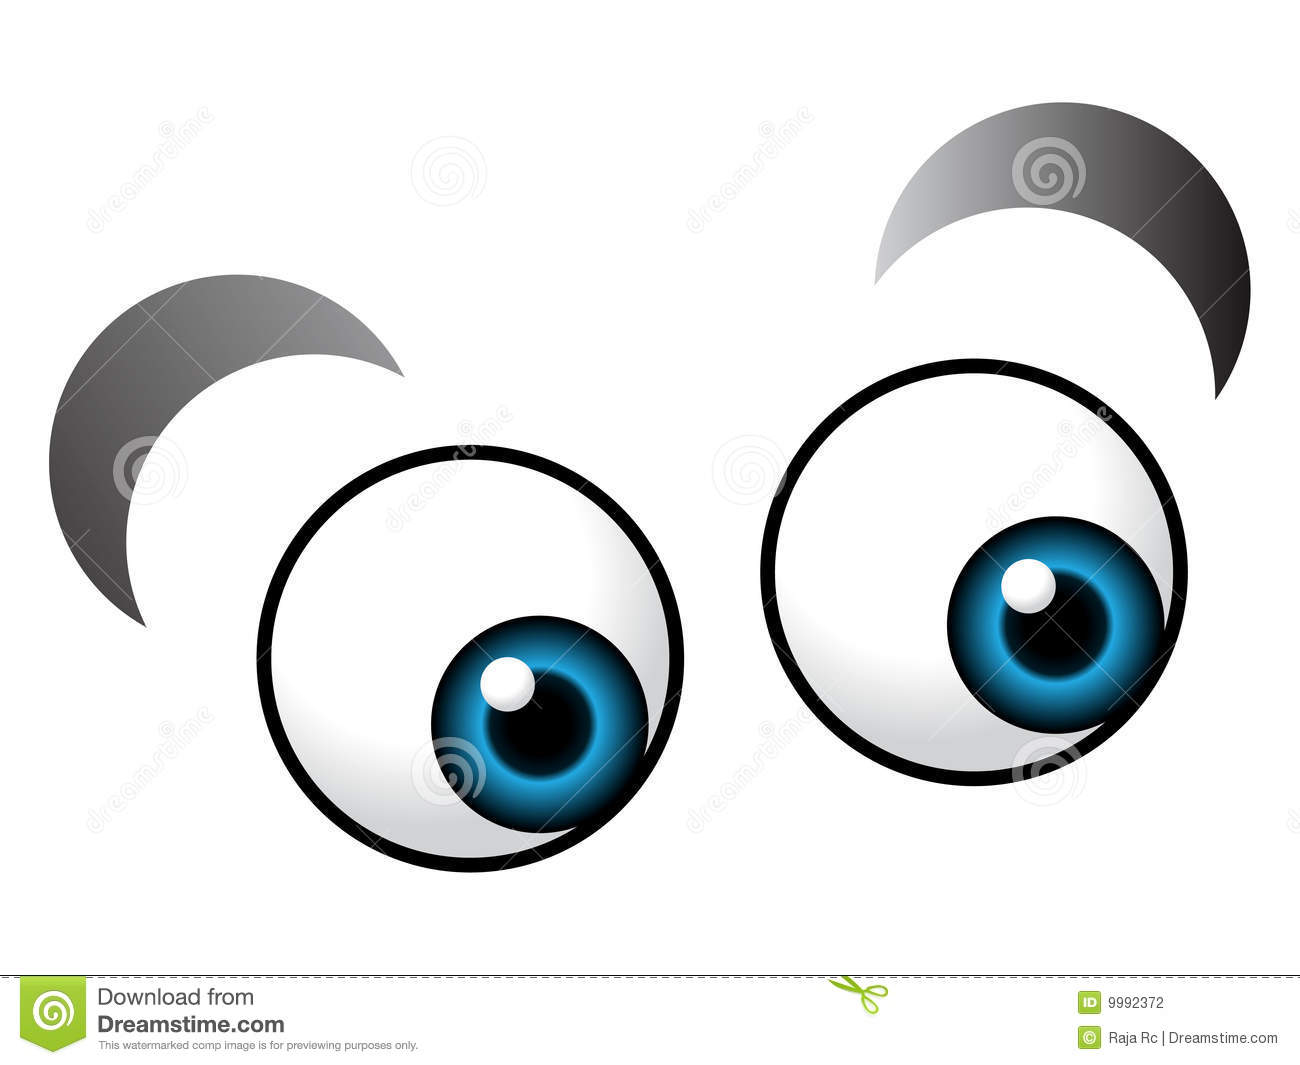 Illustration of cartoon eyes on isolated background.